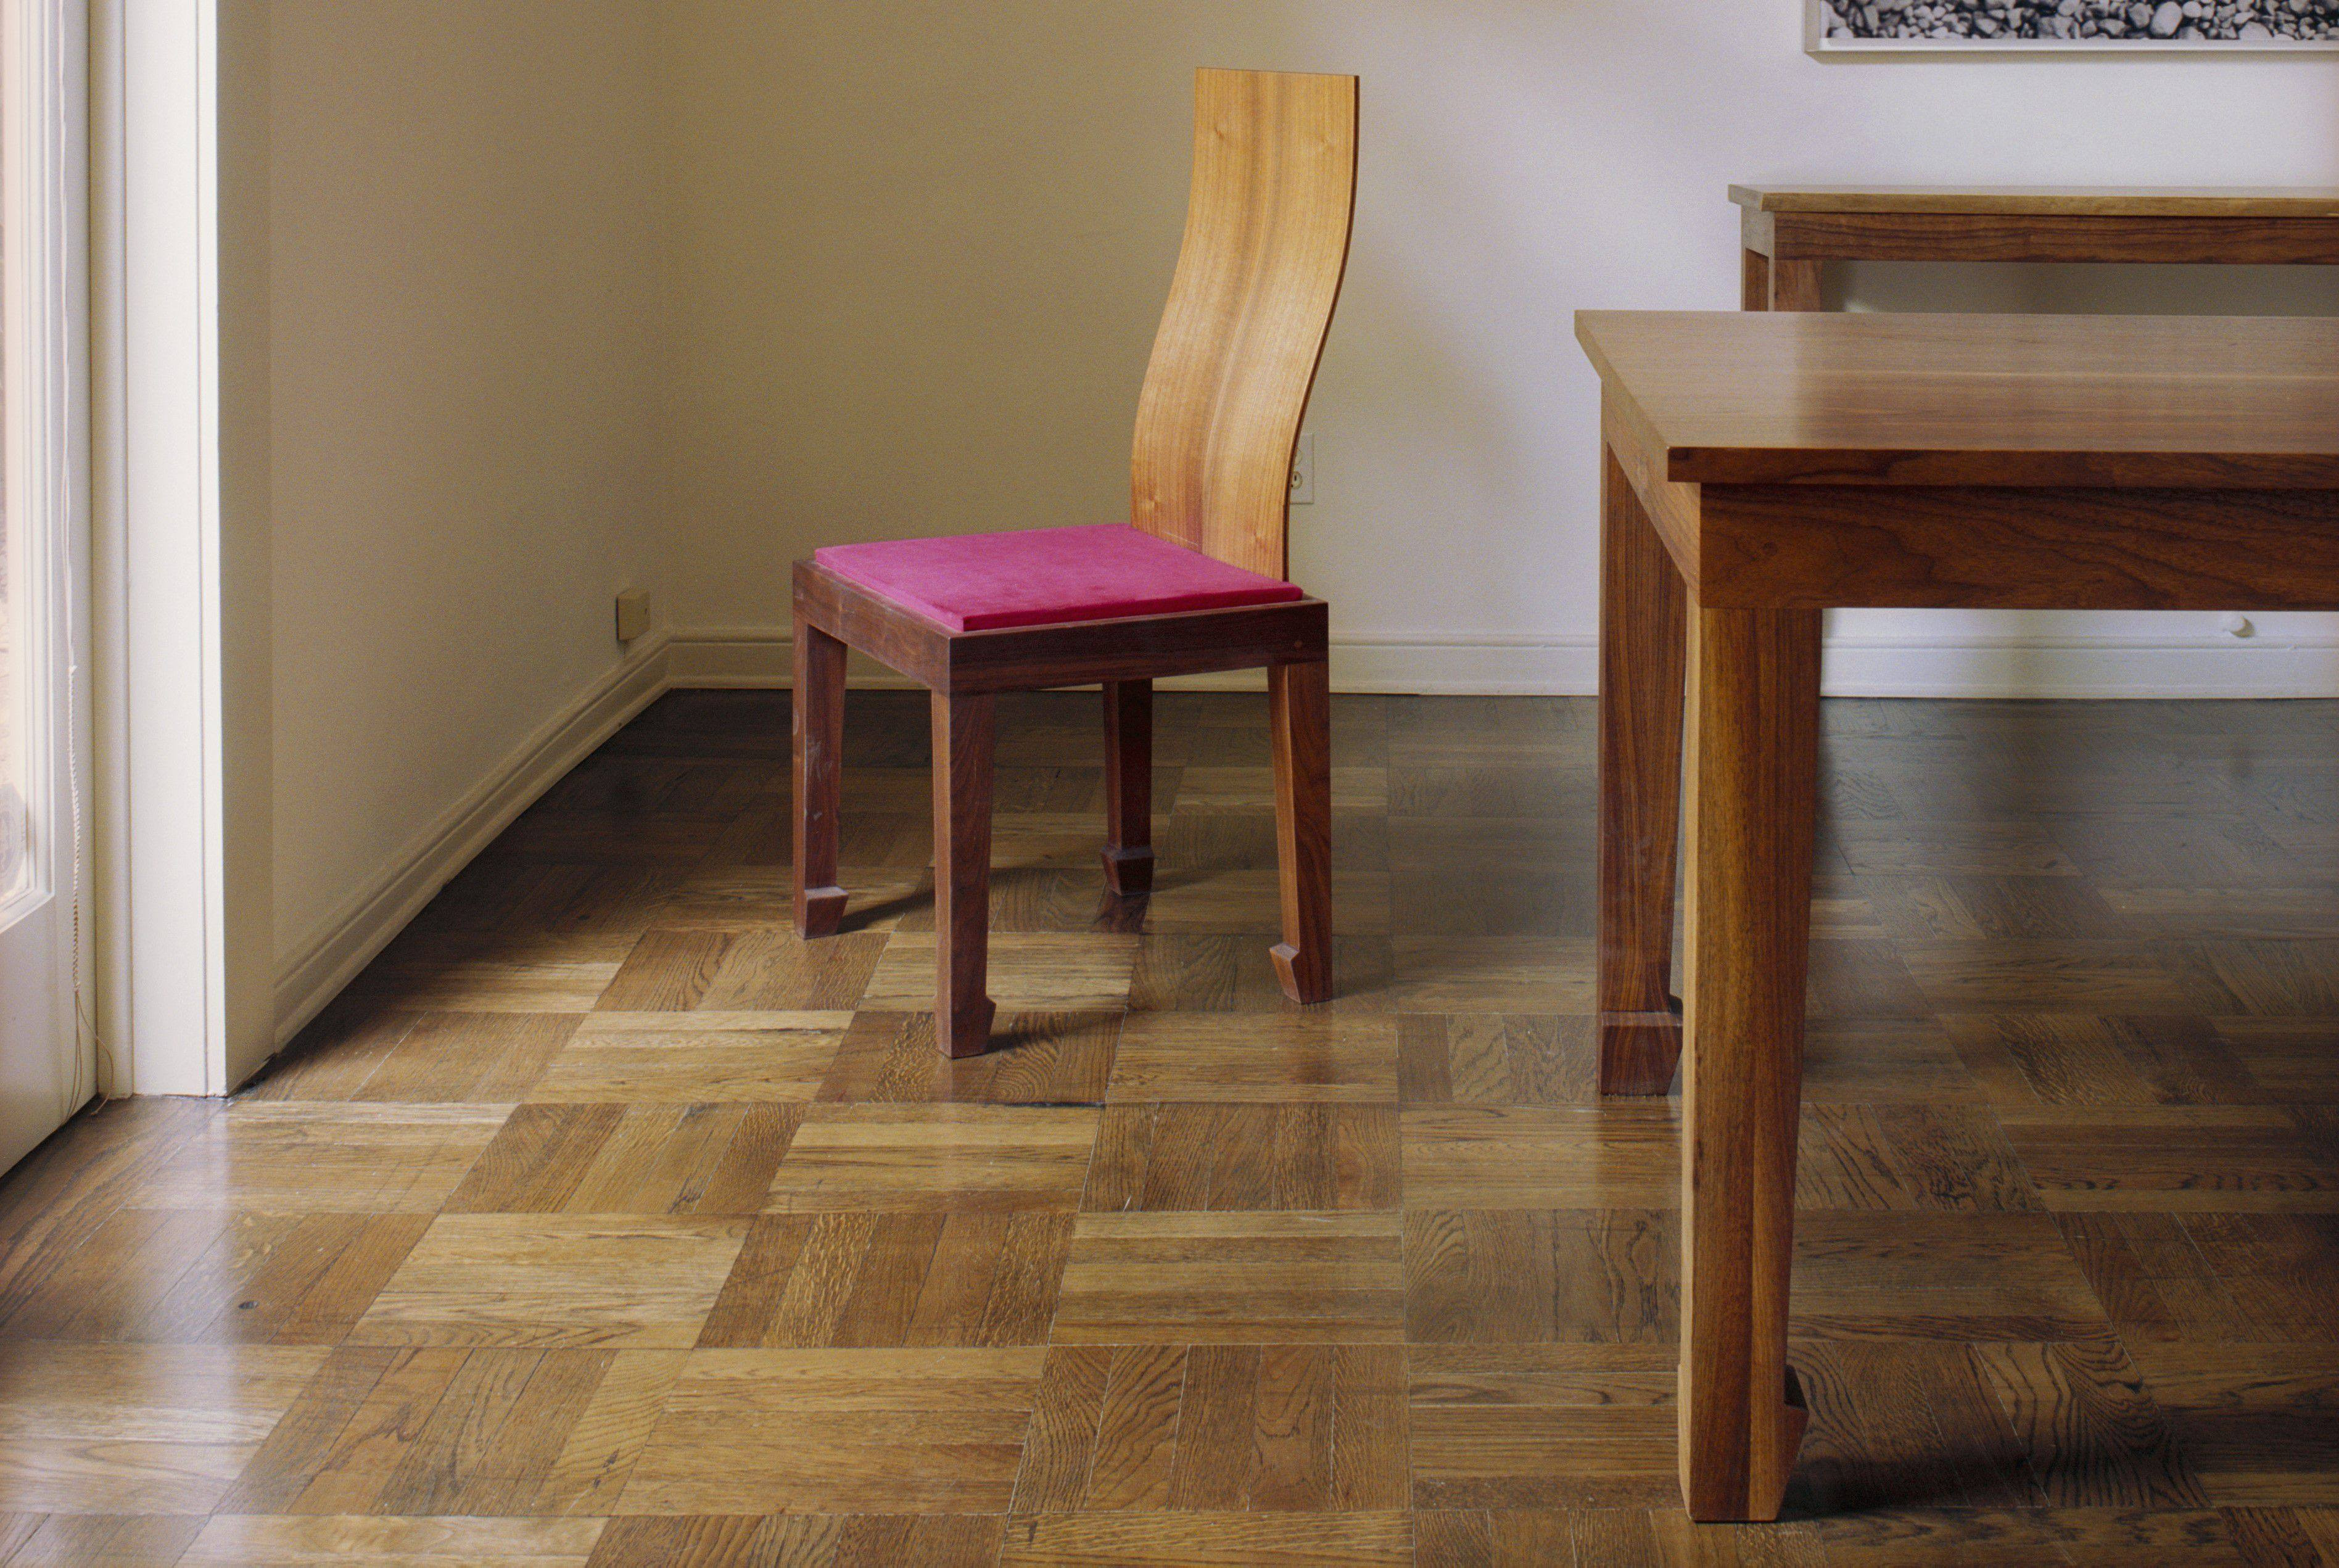 bona hardwood floor mop kit reviews of find the best bruce hardwood flooring installation instructions with natural reflections tagged bruce hardwood and laminate cleaning system bruce hardwood and laminate floor cleaner reviews